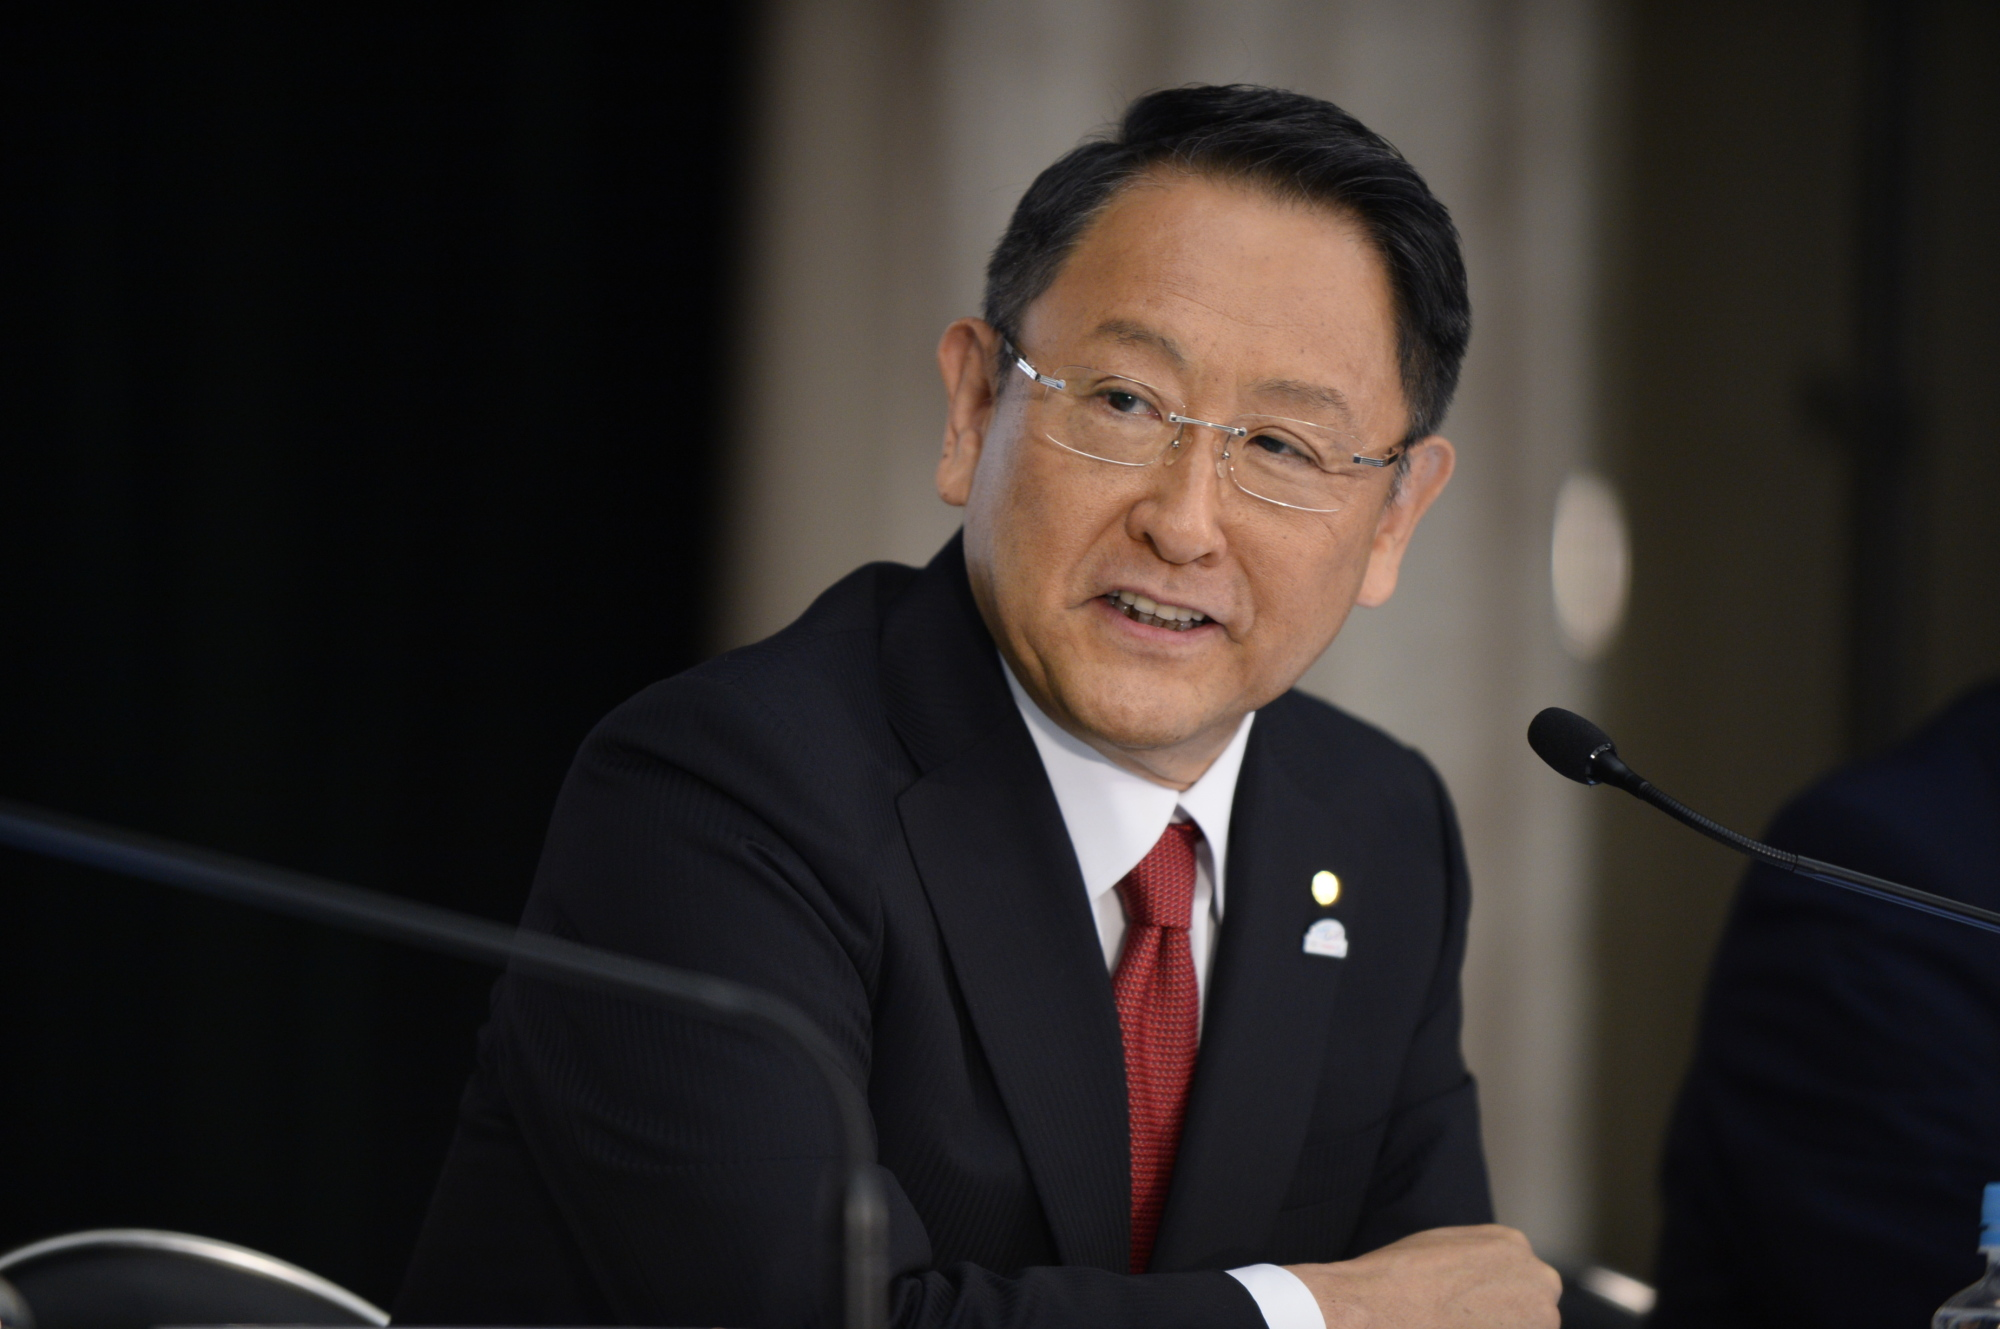 Toyota Motor Corp. President Akio Toyoda heads the Japan Automobile Manufacturers Association, which emphasized domestic carmakers' contributions to the United States in creating jobs and investment in a report Wednesday. | BLOOMBERG